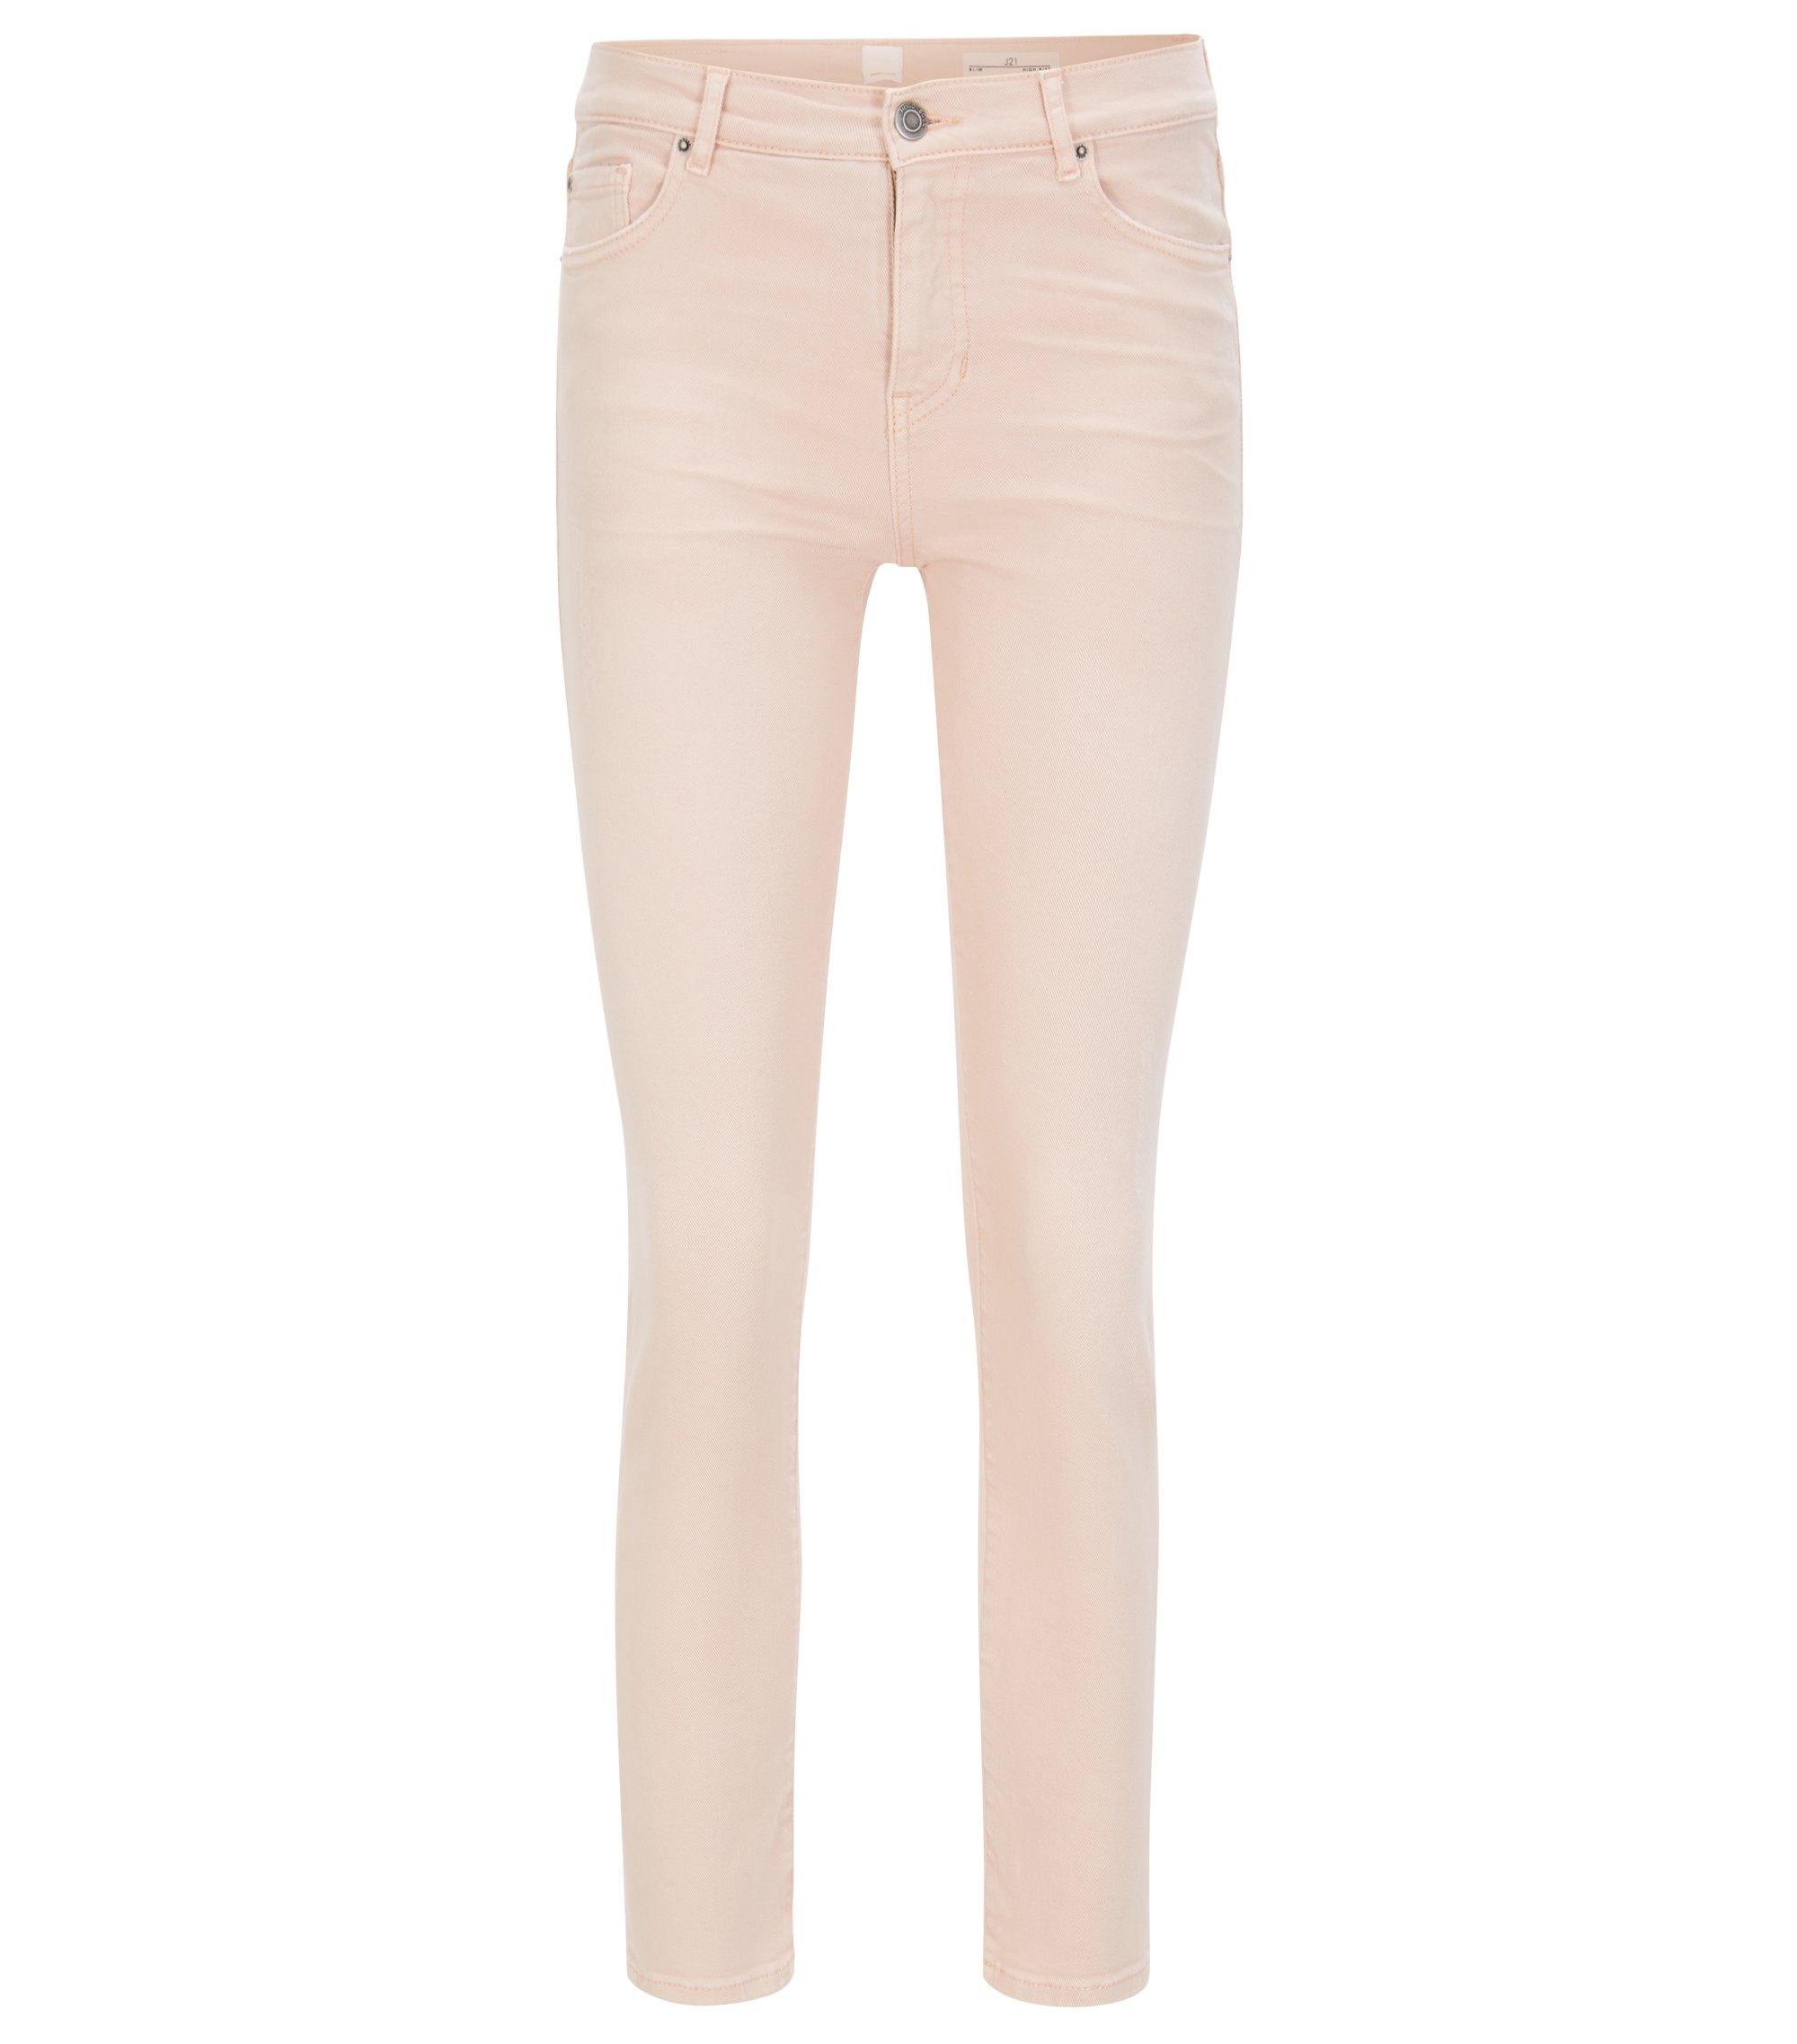 Jeans Slim Fit en denim stretch tissé, Rose clair